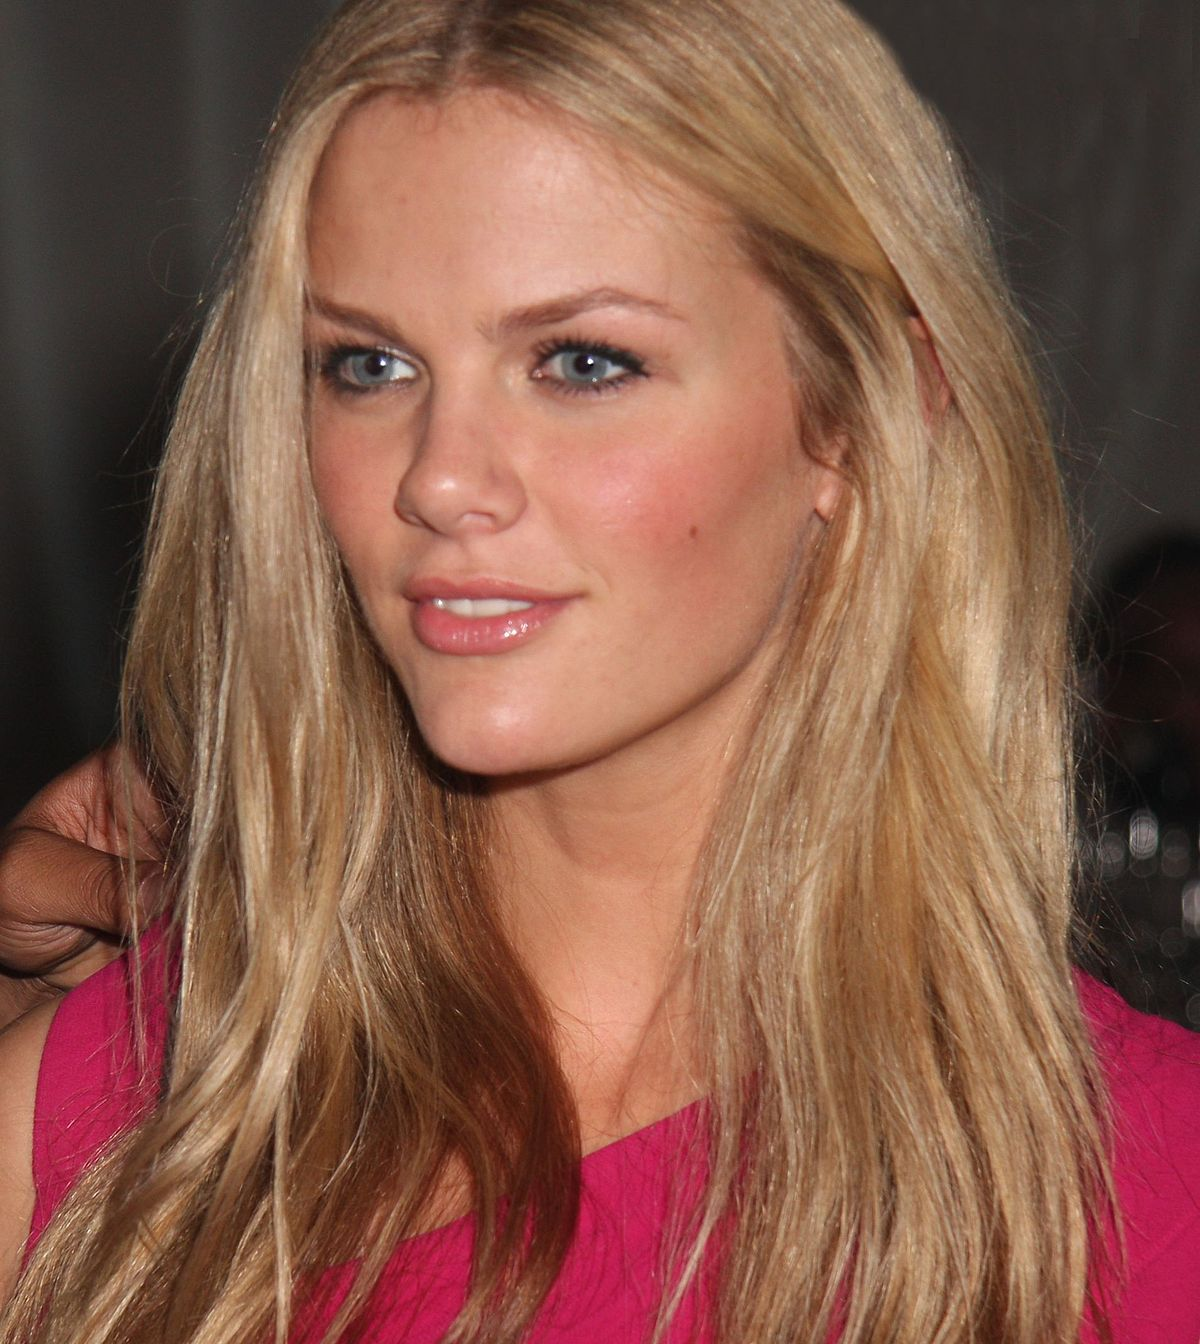 Brooklyn Decker - Wiki... Brooklyn Decker